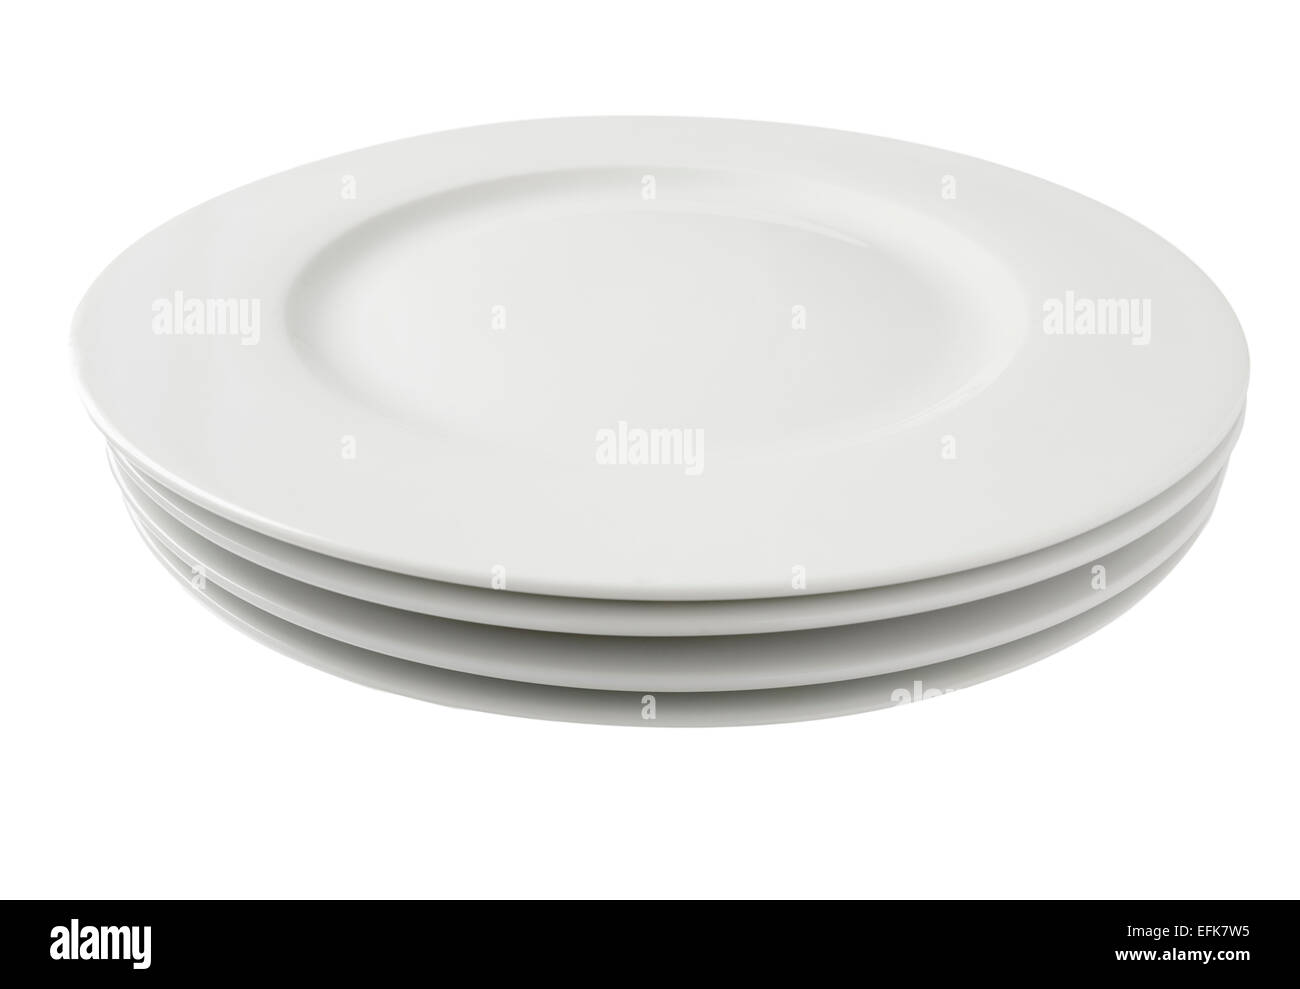 Stack of round white dinner plates - Stock Image